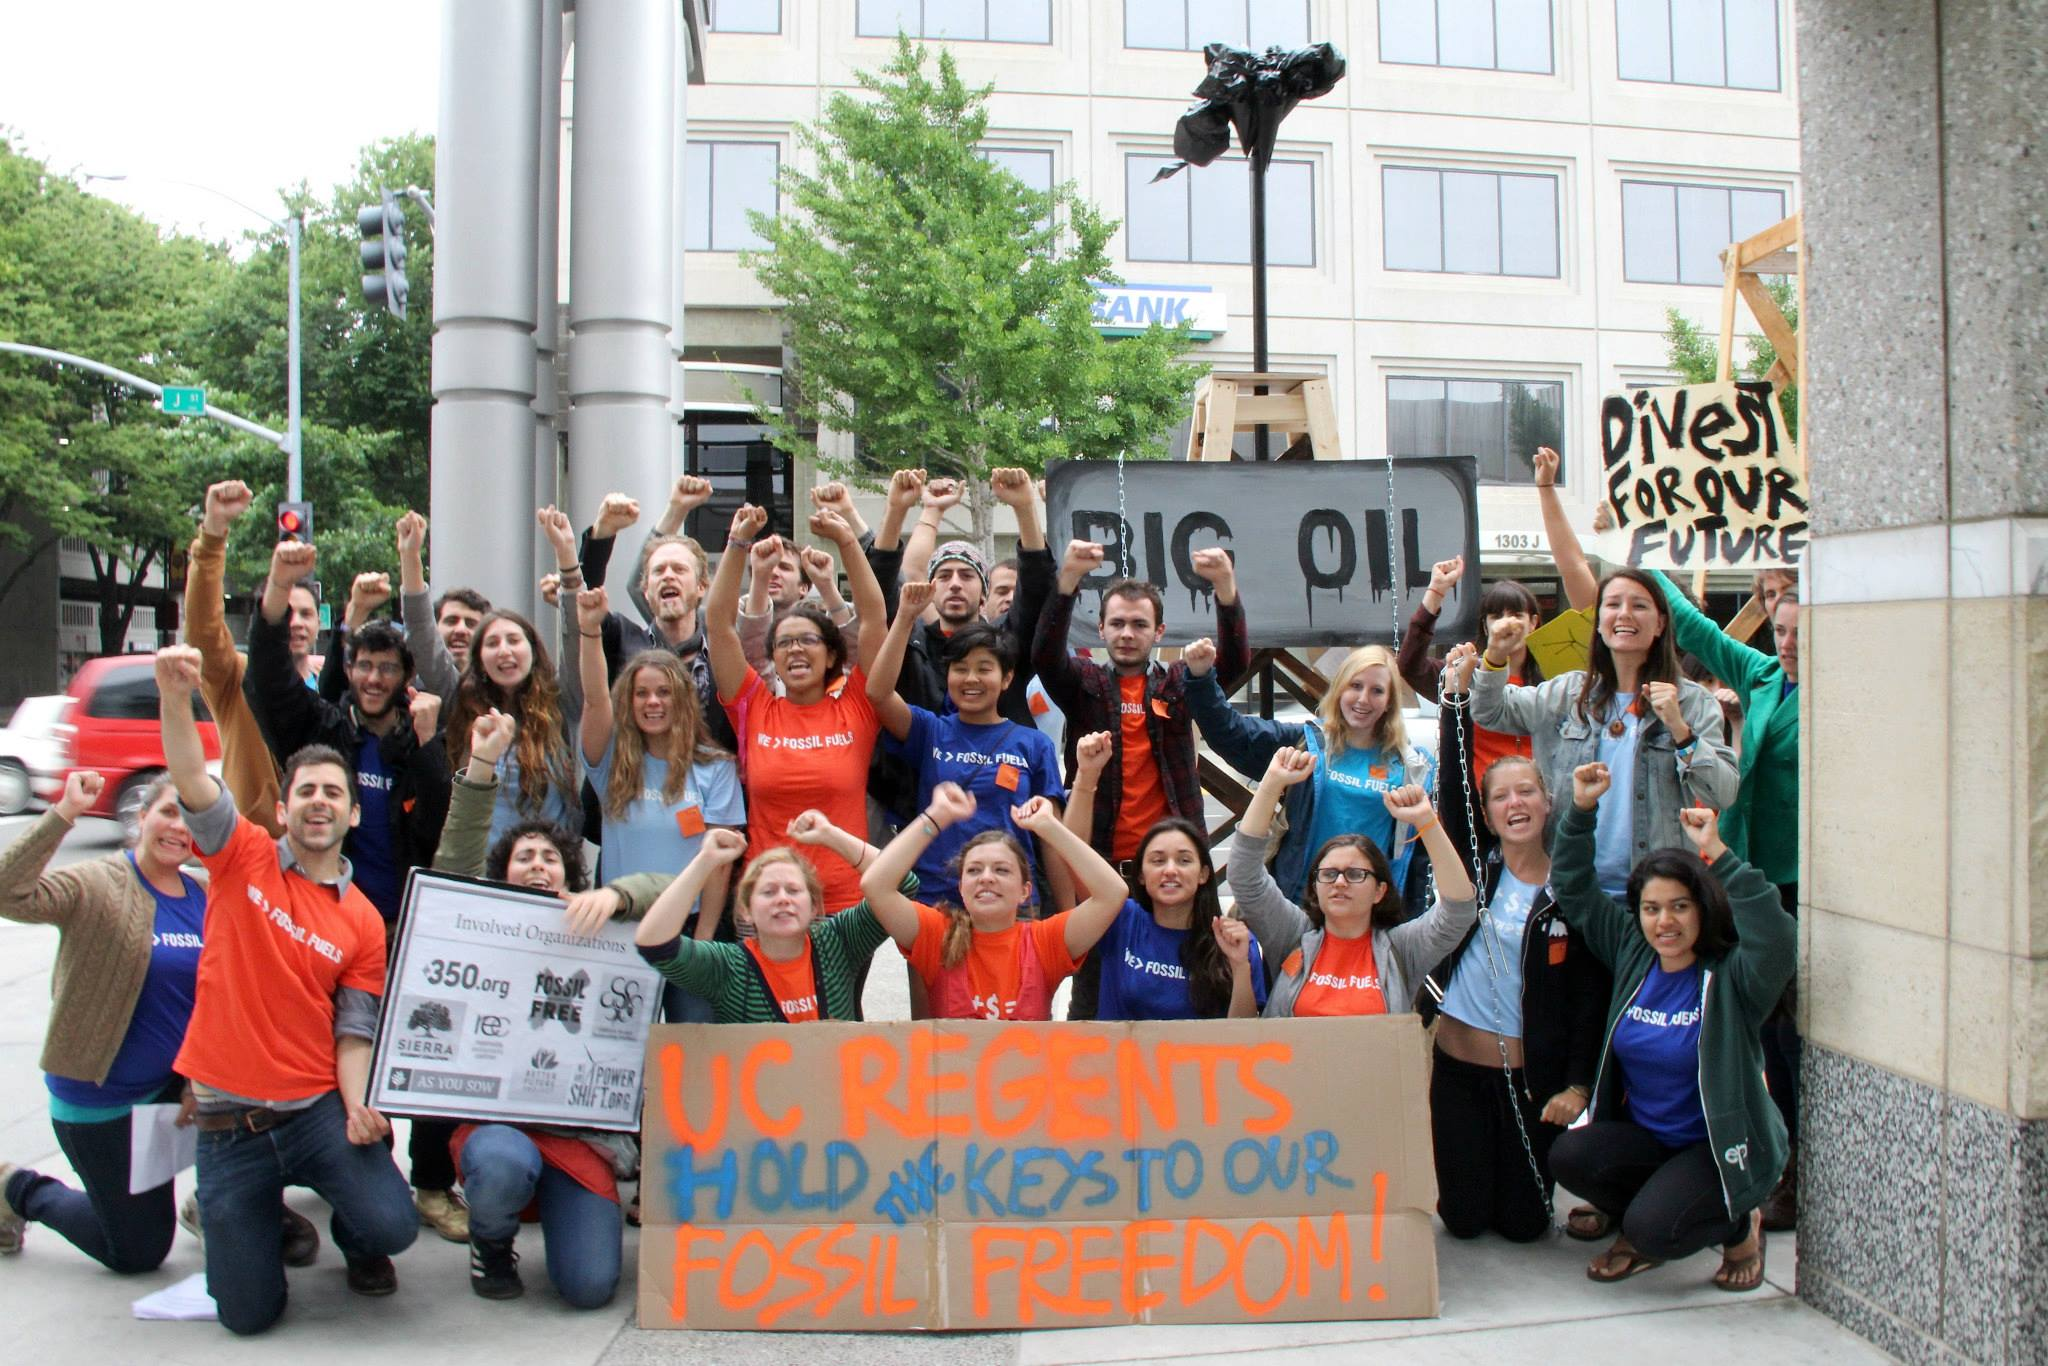 Students from across California participate in a direct action and testify before the UC regents at their May meeting in Sacramento about the importance of divesting from fossil fuels and investing in a sustainable future. Photo Credit: Mauricio Castillo